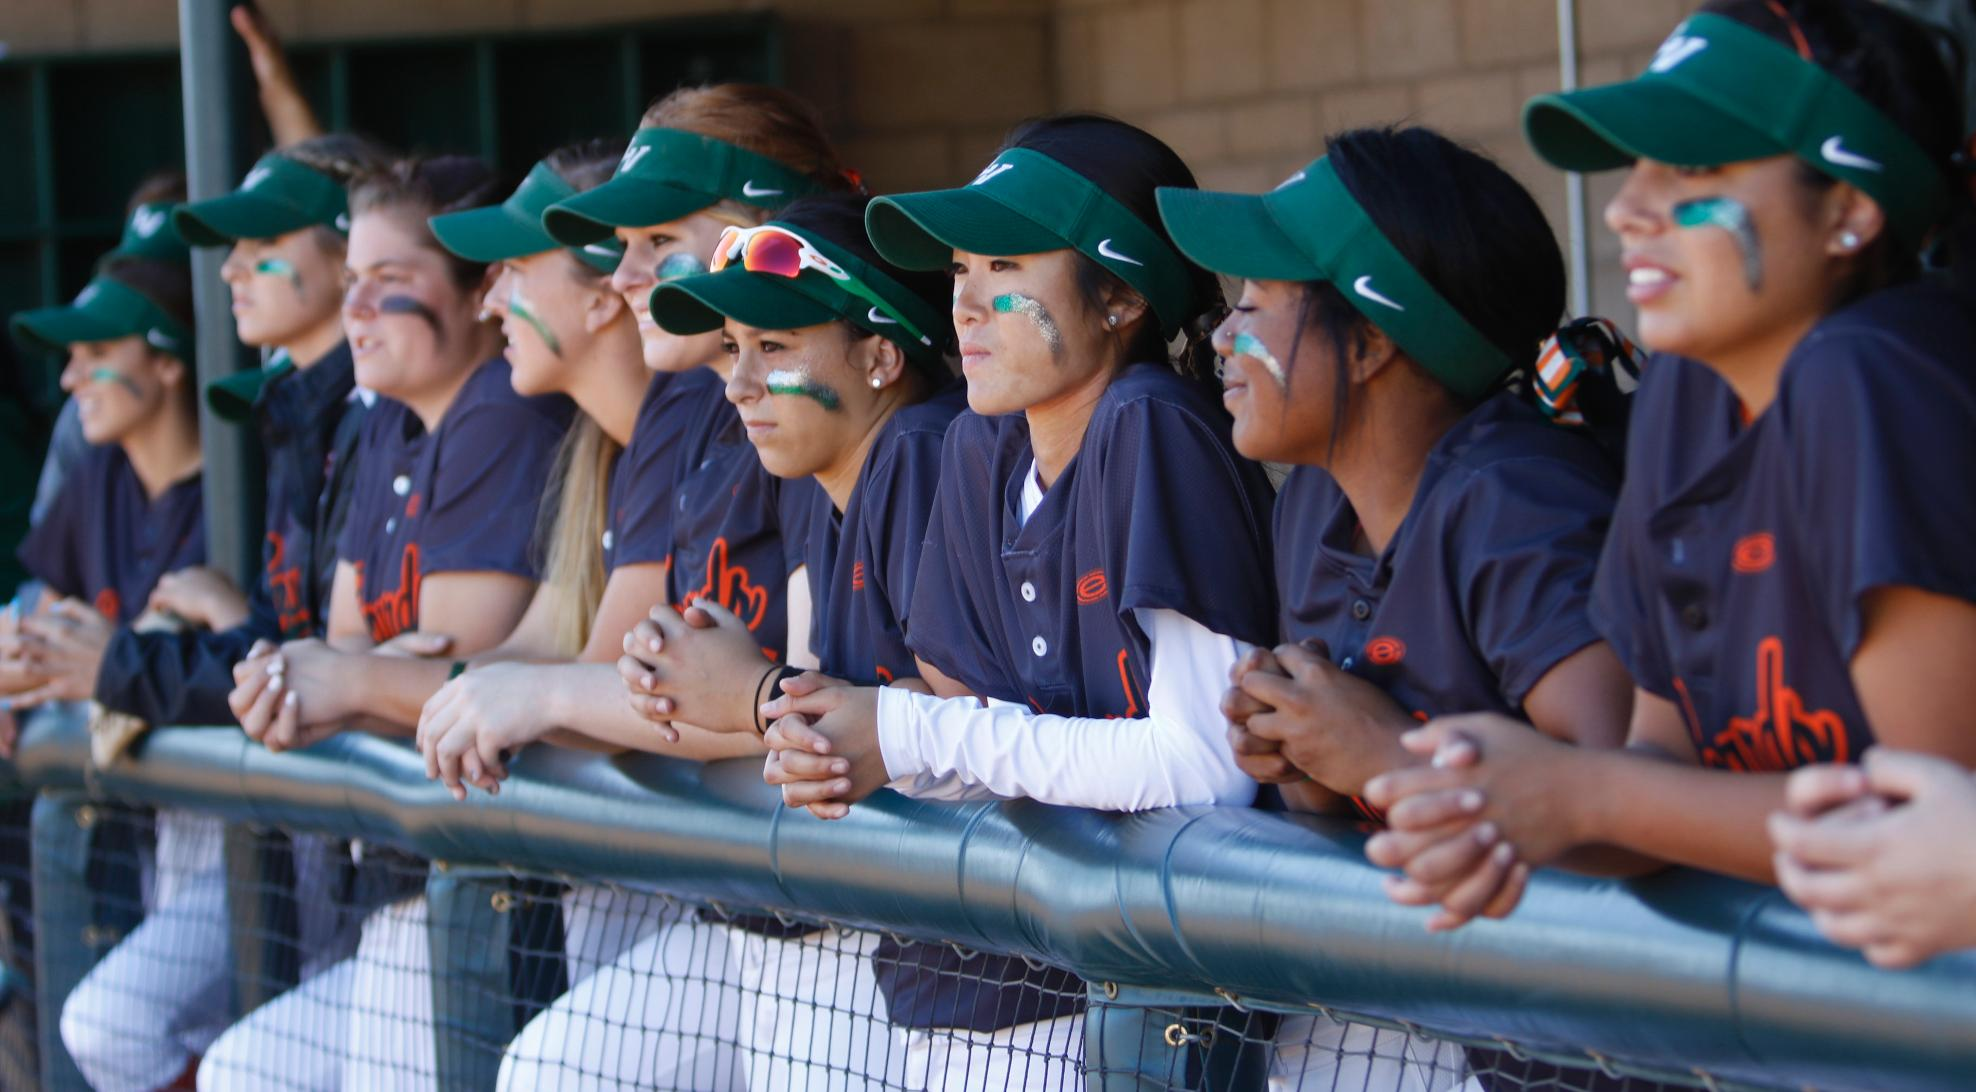 LA VERNE ATHLETIC ASSOCIATES (LVAA)